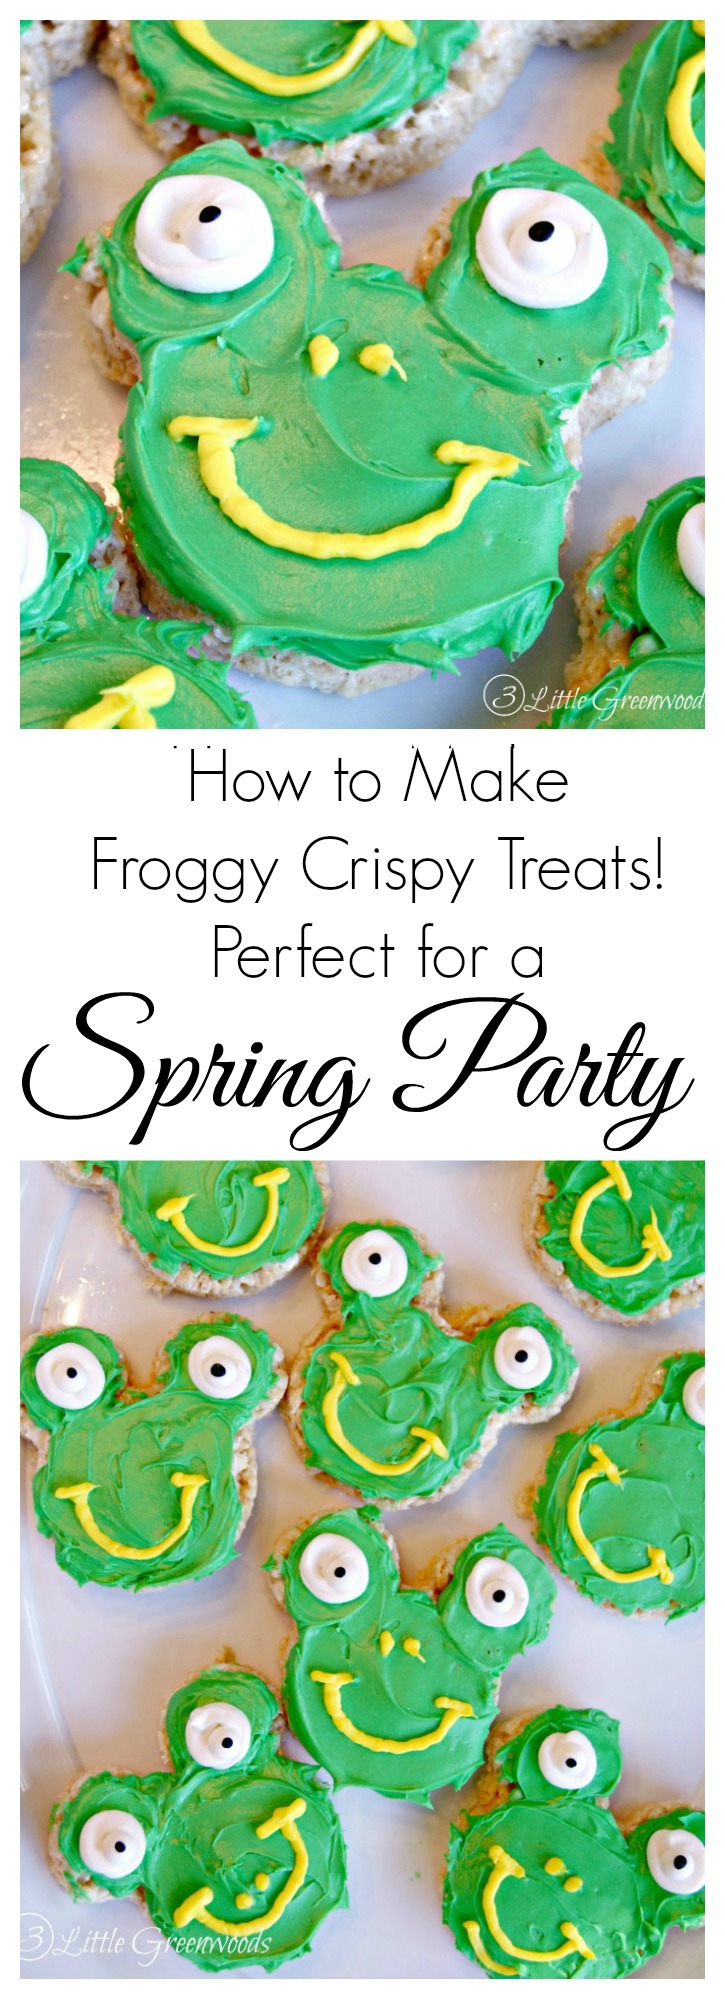 These Froggy Shaped Crispy Treats are a cute and super easy Easter treat idea. They are simple to make, and are perfect for your next nature or frog themed birthday party, Earth Day or spring celebration!